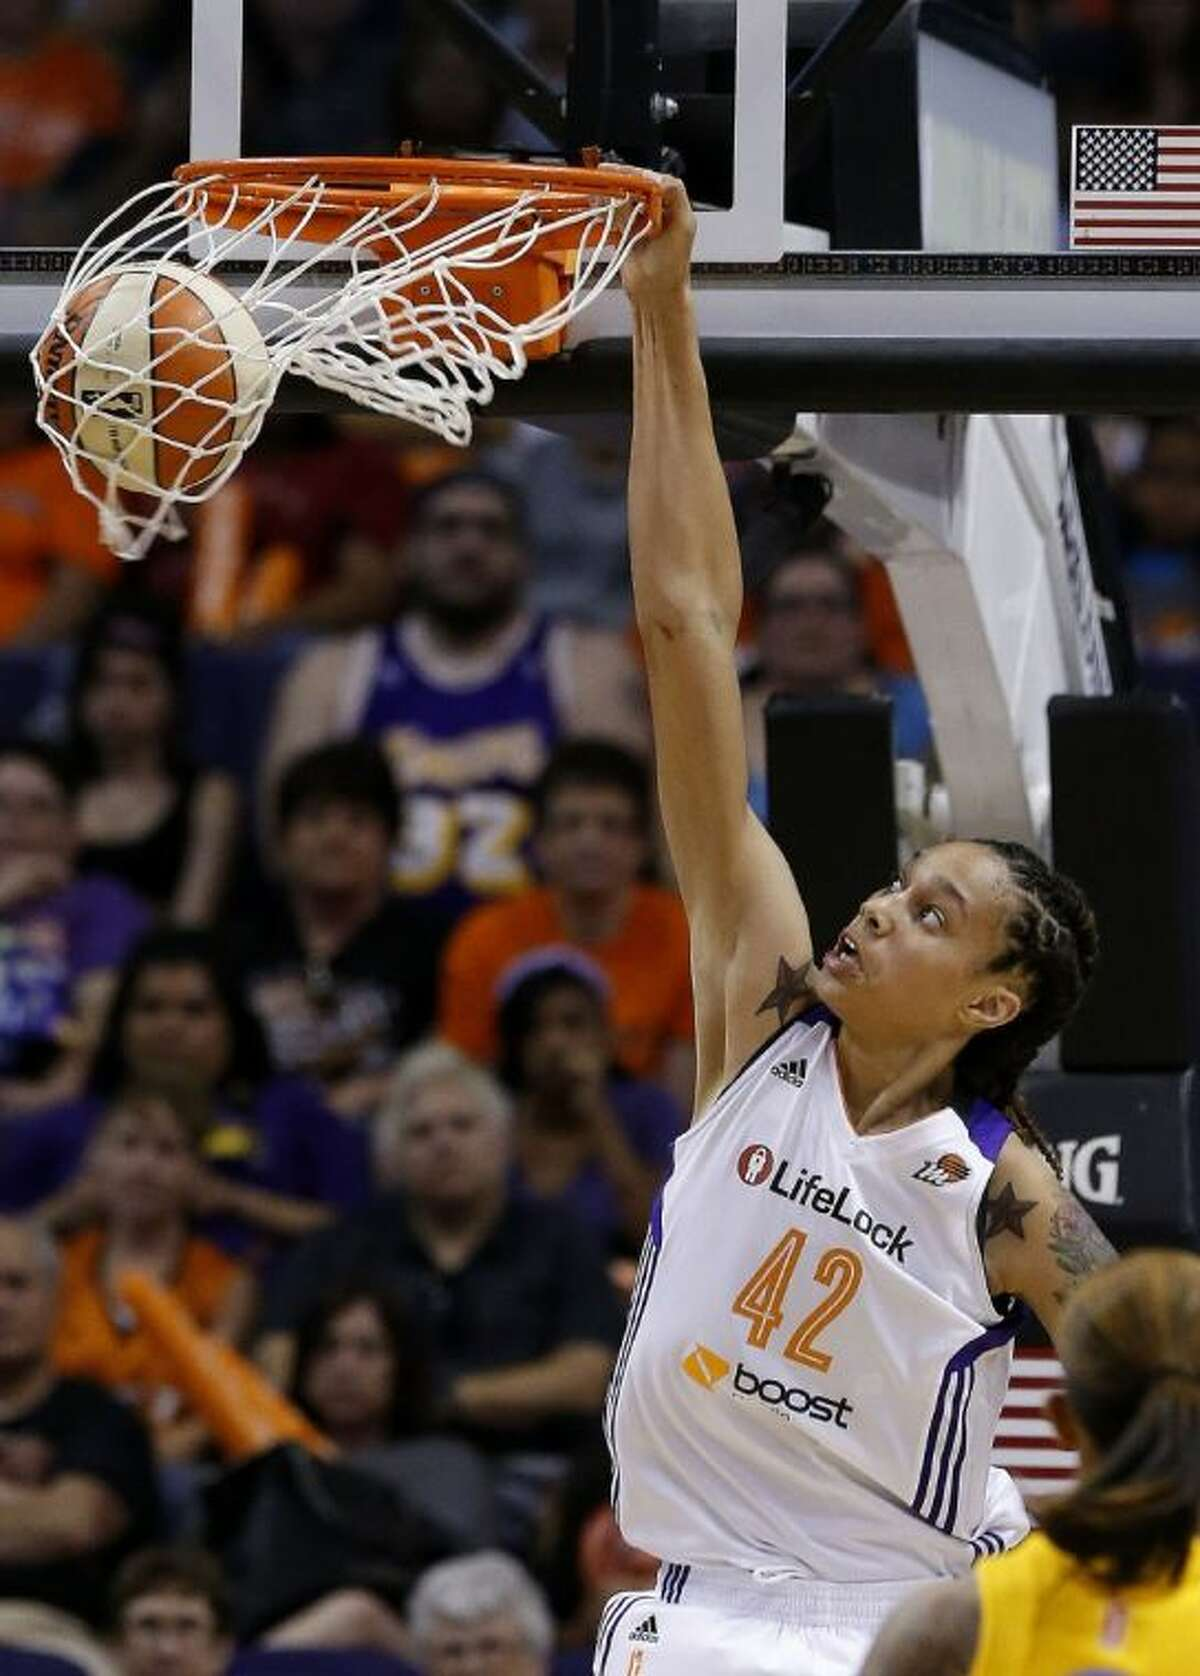 Phoenix Mercury player and former Baylor star Brittney Griner dunks against the Chicago Sky during the second half on May 27 in Phoenix. It's been 15 years since Sylvia Crawley won the ABL slam dunk contest with a blindfolded jam. With so many more women who can dunk, including Griner, it may not be long before it becomes part of WNBA All-Star weekend.